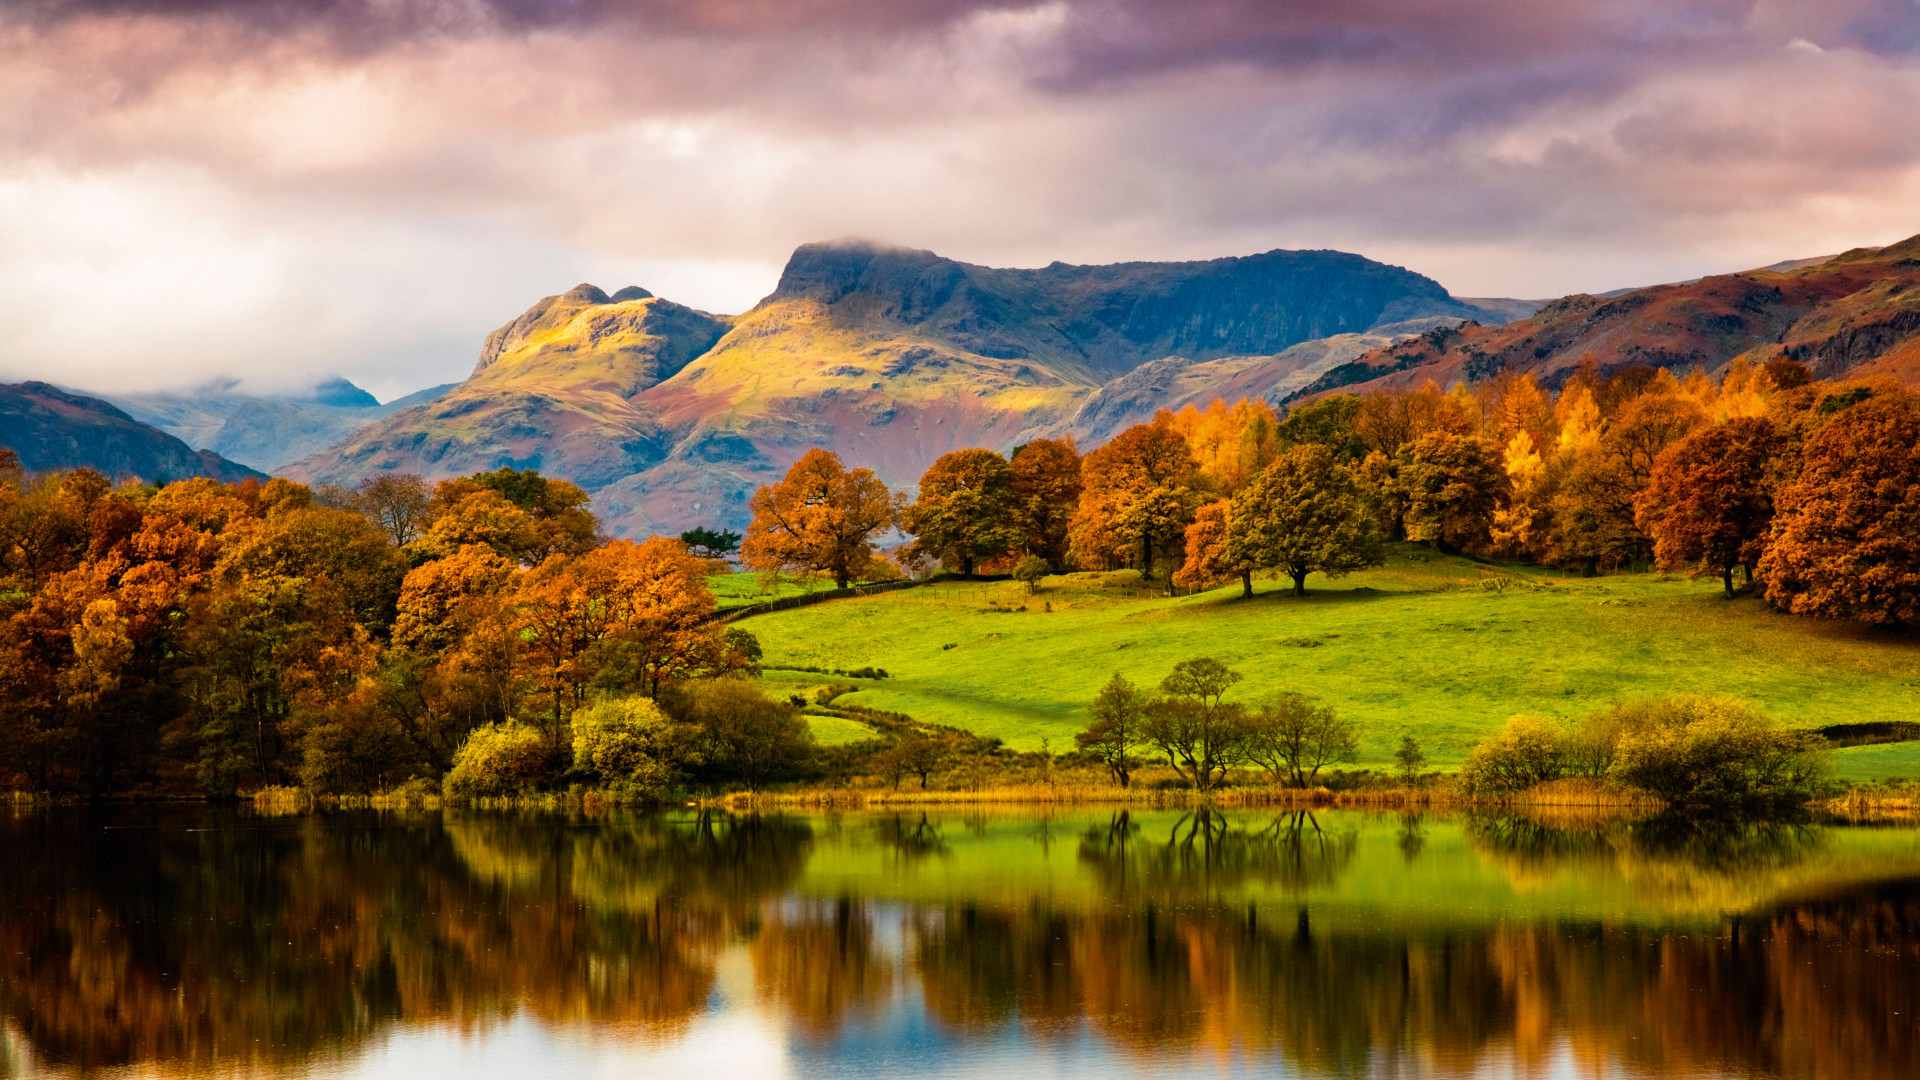 Lake views and rusty leaves in Cumbria